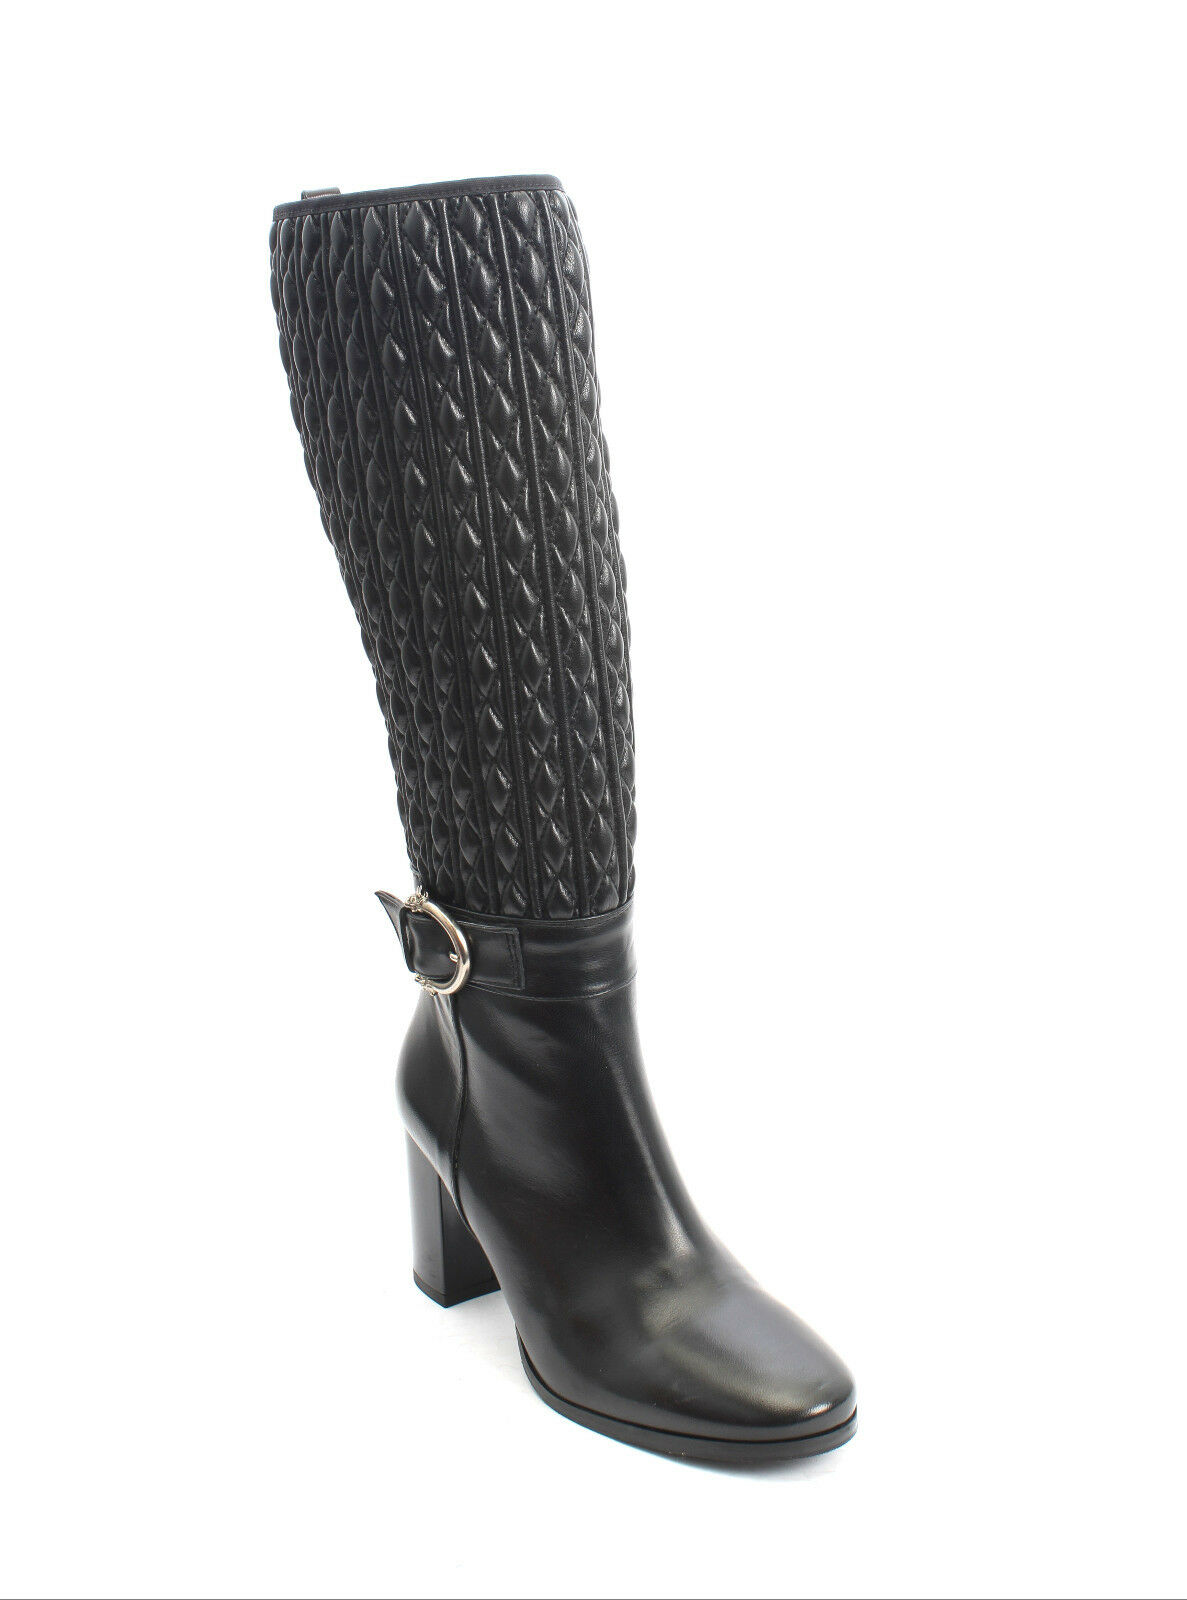 Isabelle 509r Black Quilted Stretch Leather Zip-Up Knee High Boots 38.5 / US 8.5